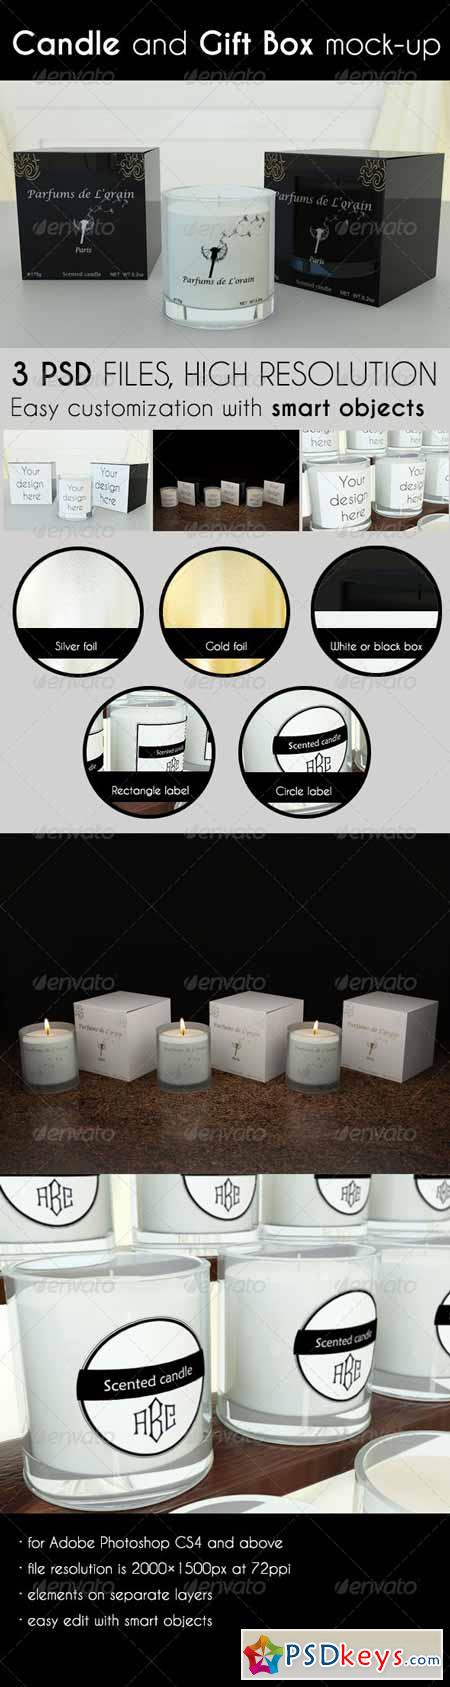 Candle and Gift Box Mock-Up 7244792